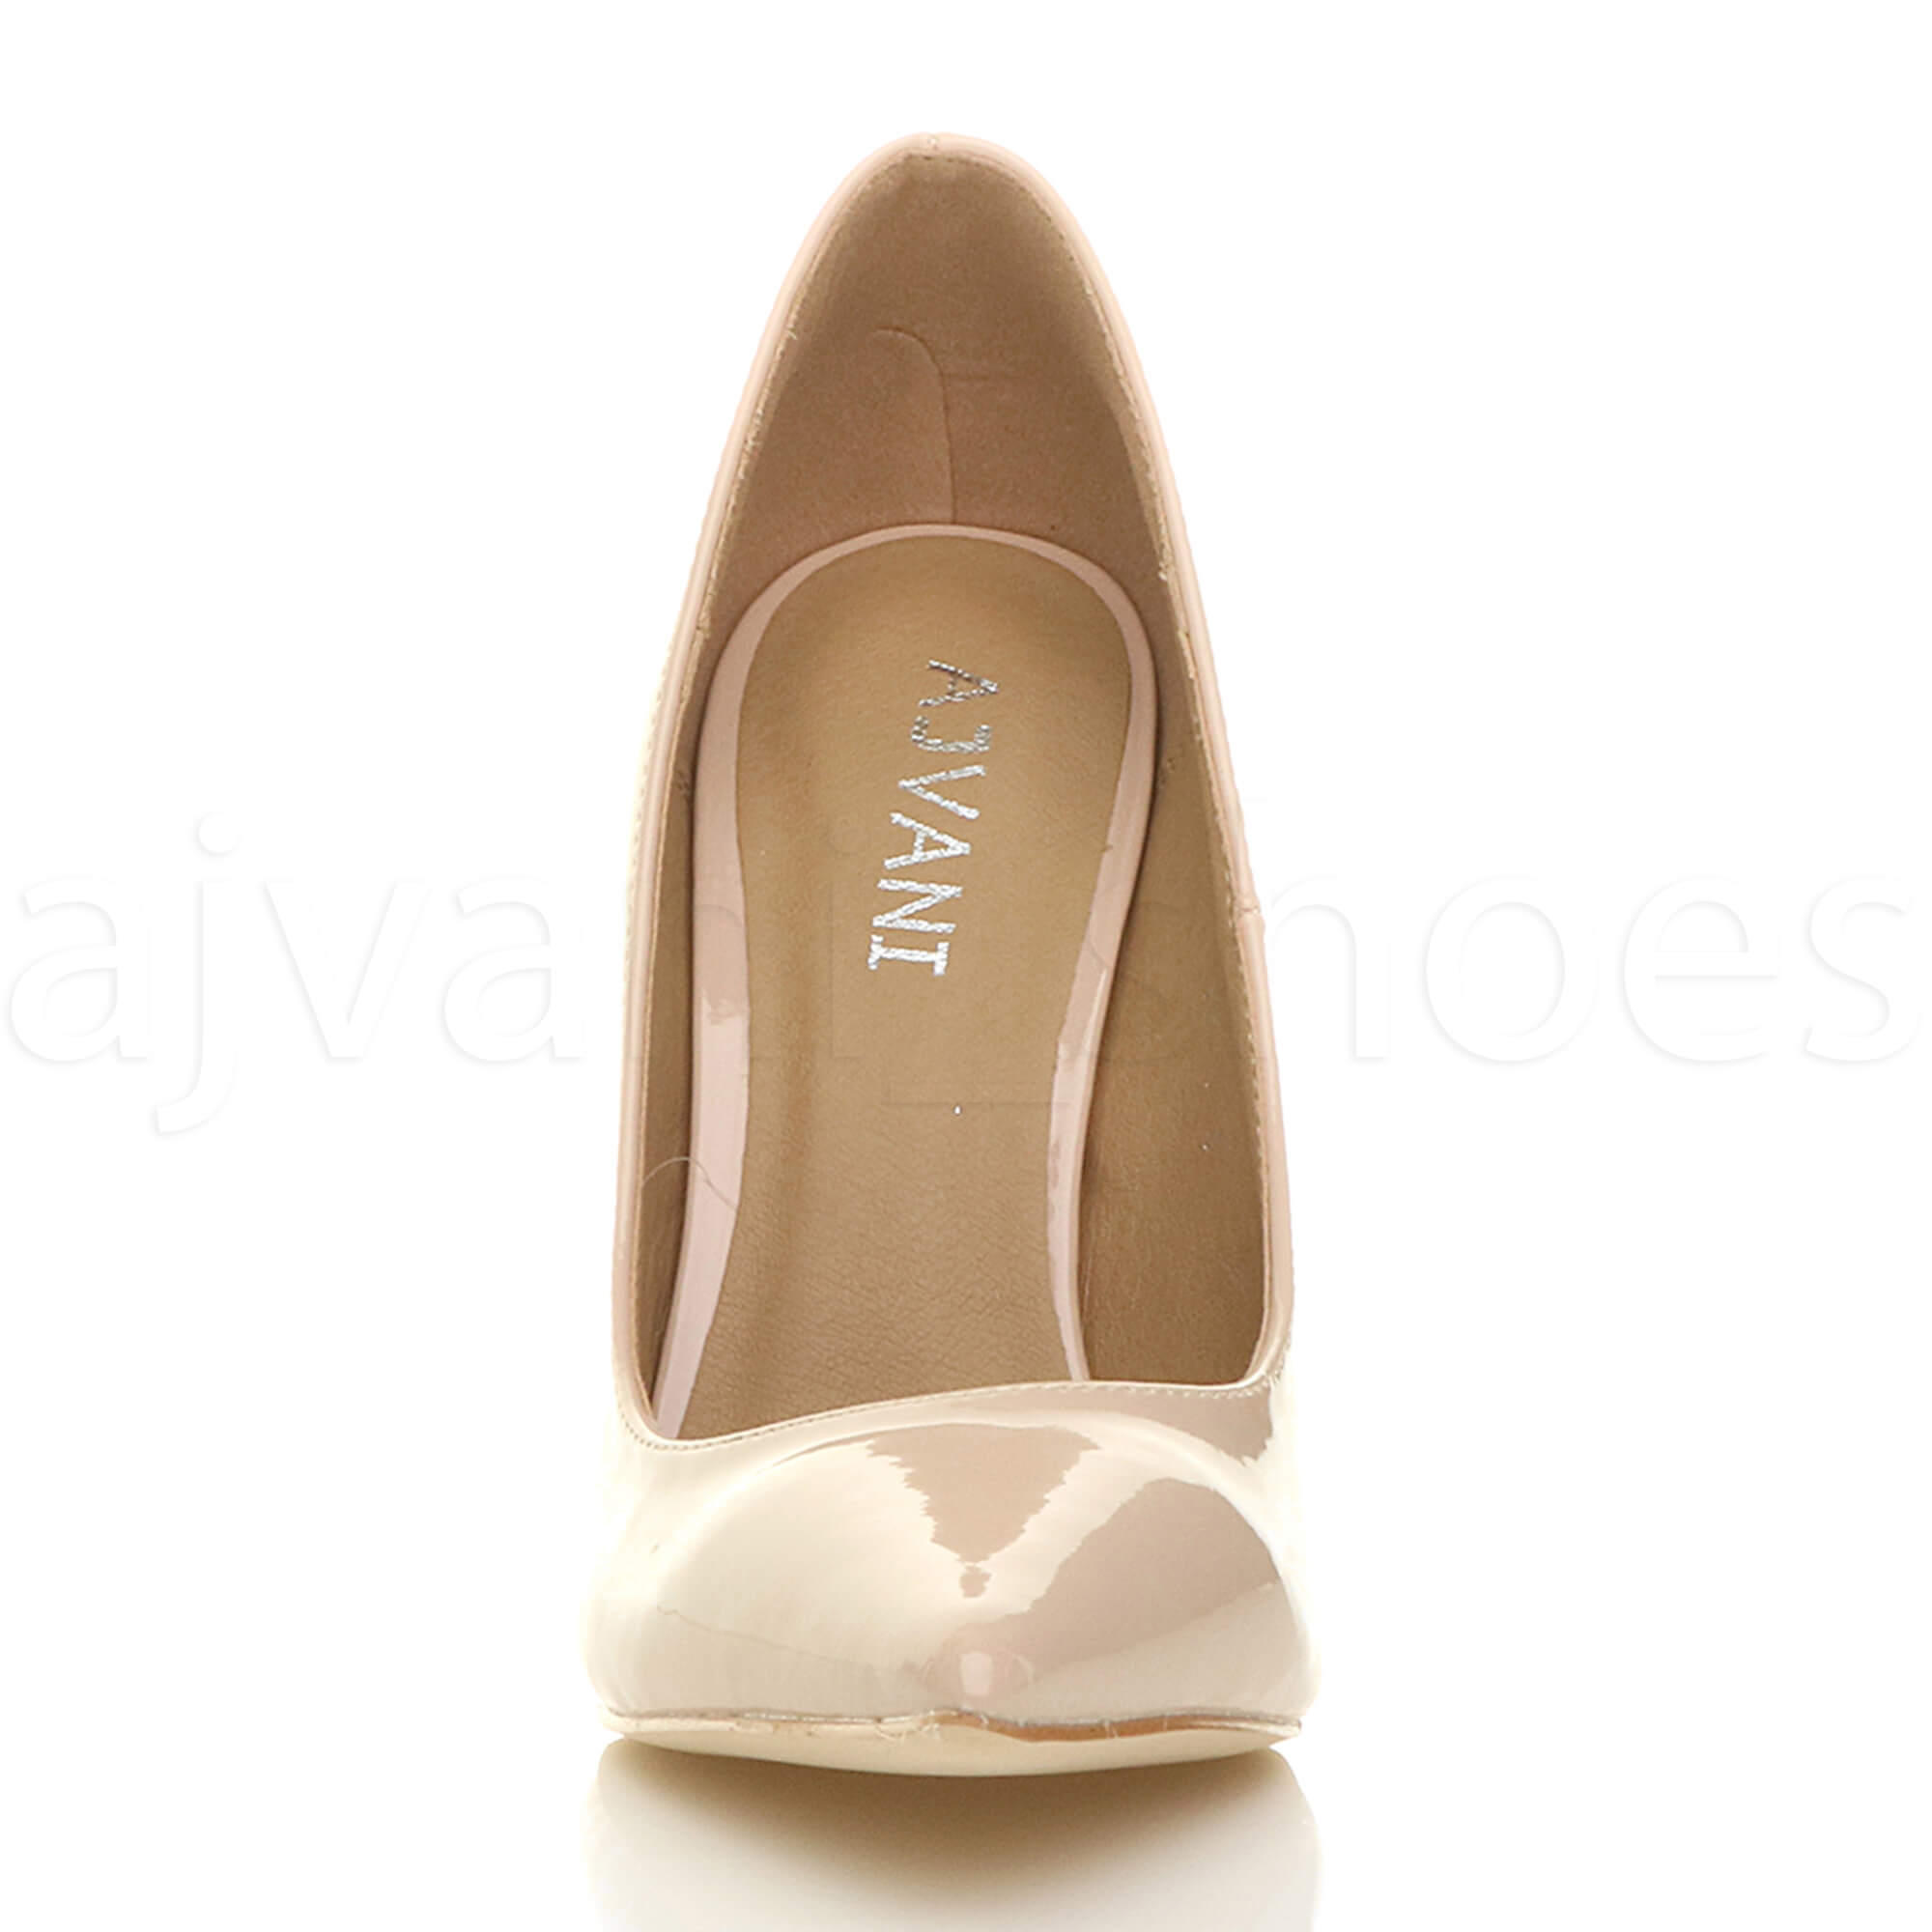 WOMENS-LADIES-HIGH-HEEL-POINTED-CONTRAST-COURT-SMART-PARTY-WORK-SHOES-PUMPS-SIZE thumbnail 133